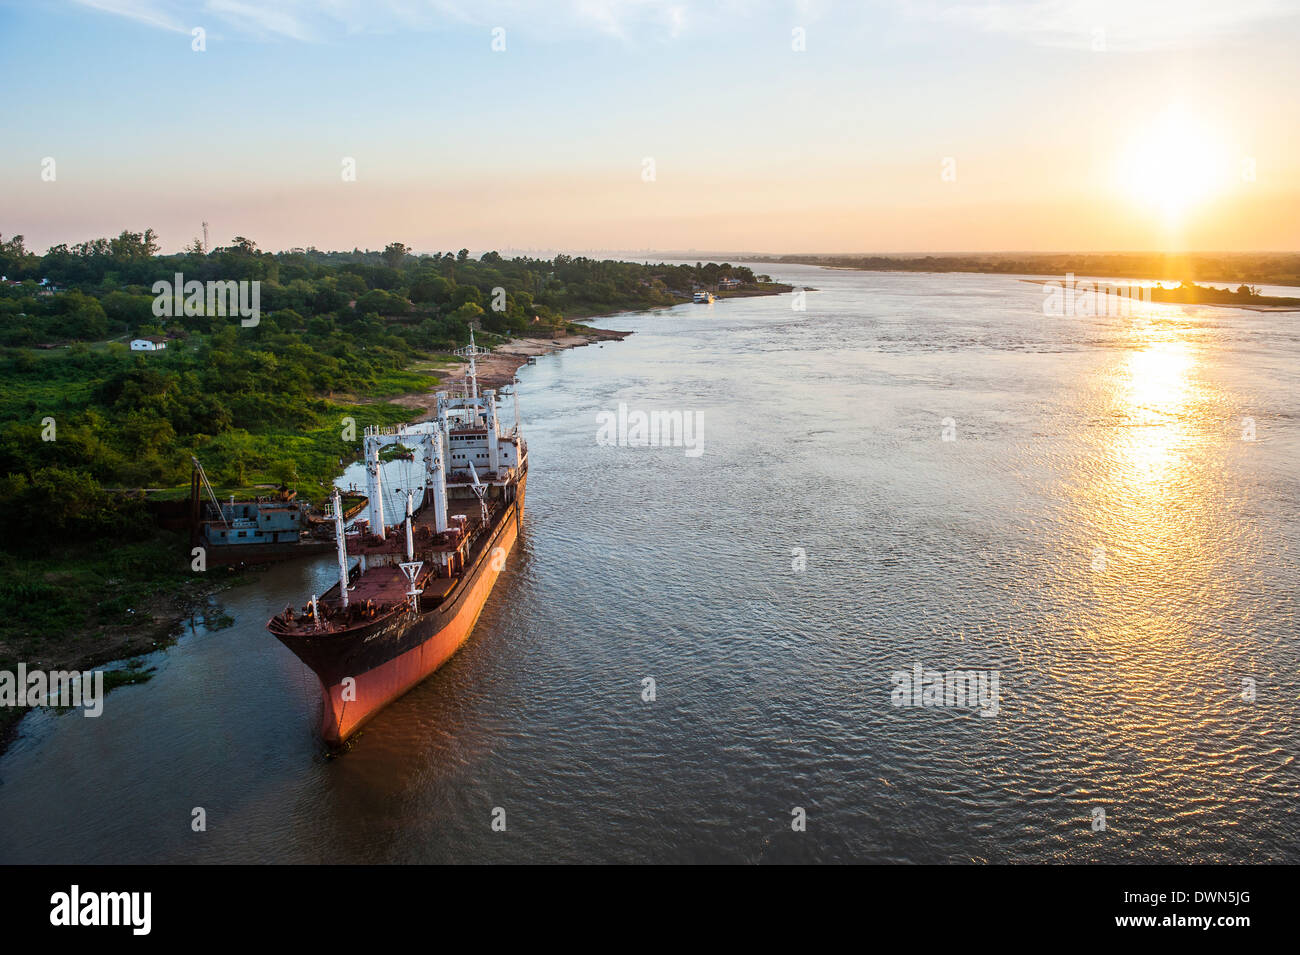 Cargo boat at sunset on the Asuncion River, Paraguay, South America - Stock Image